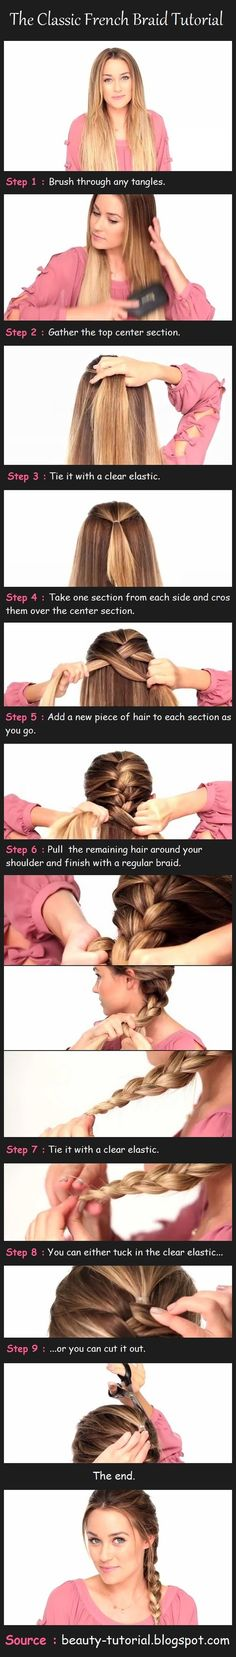 a great tutorial!!